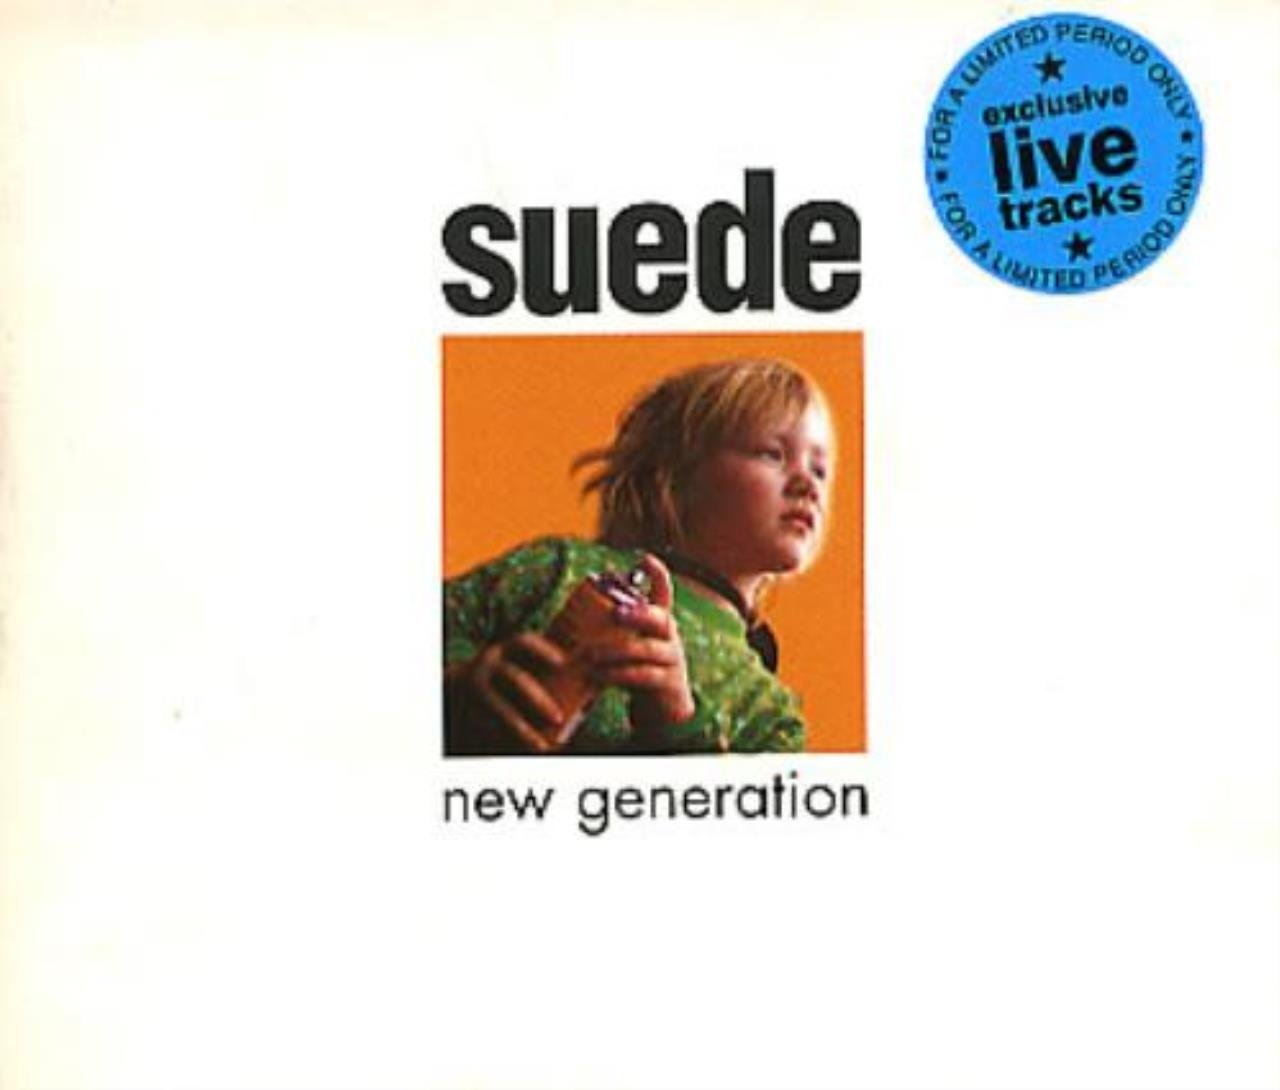 New Generation +3 Live Tracks: Animal Nitrate / Wild Ones / Pantomime Horse (New Generation #2) by Nude